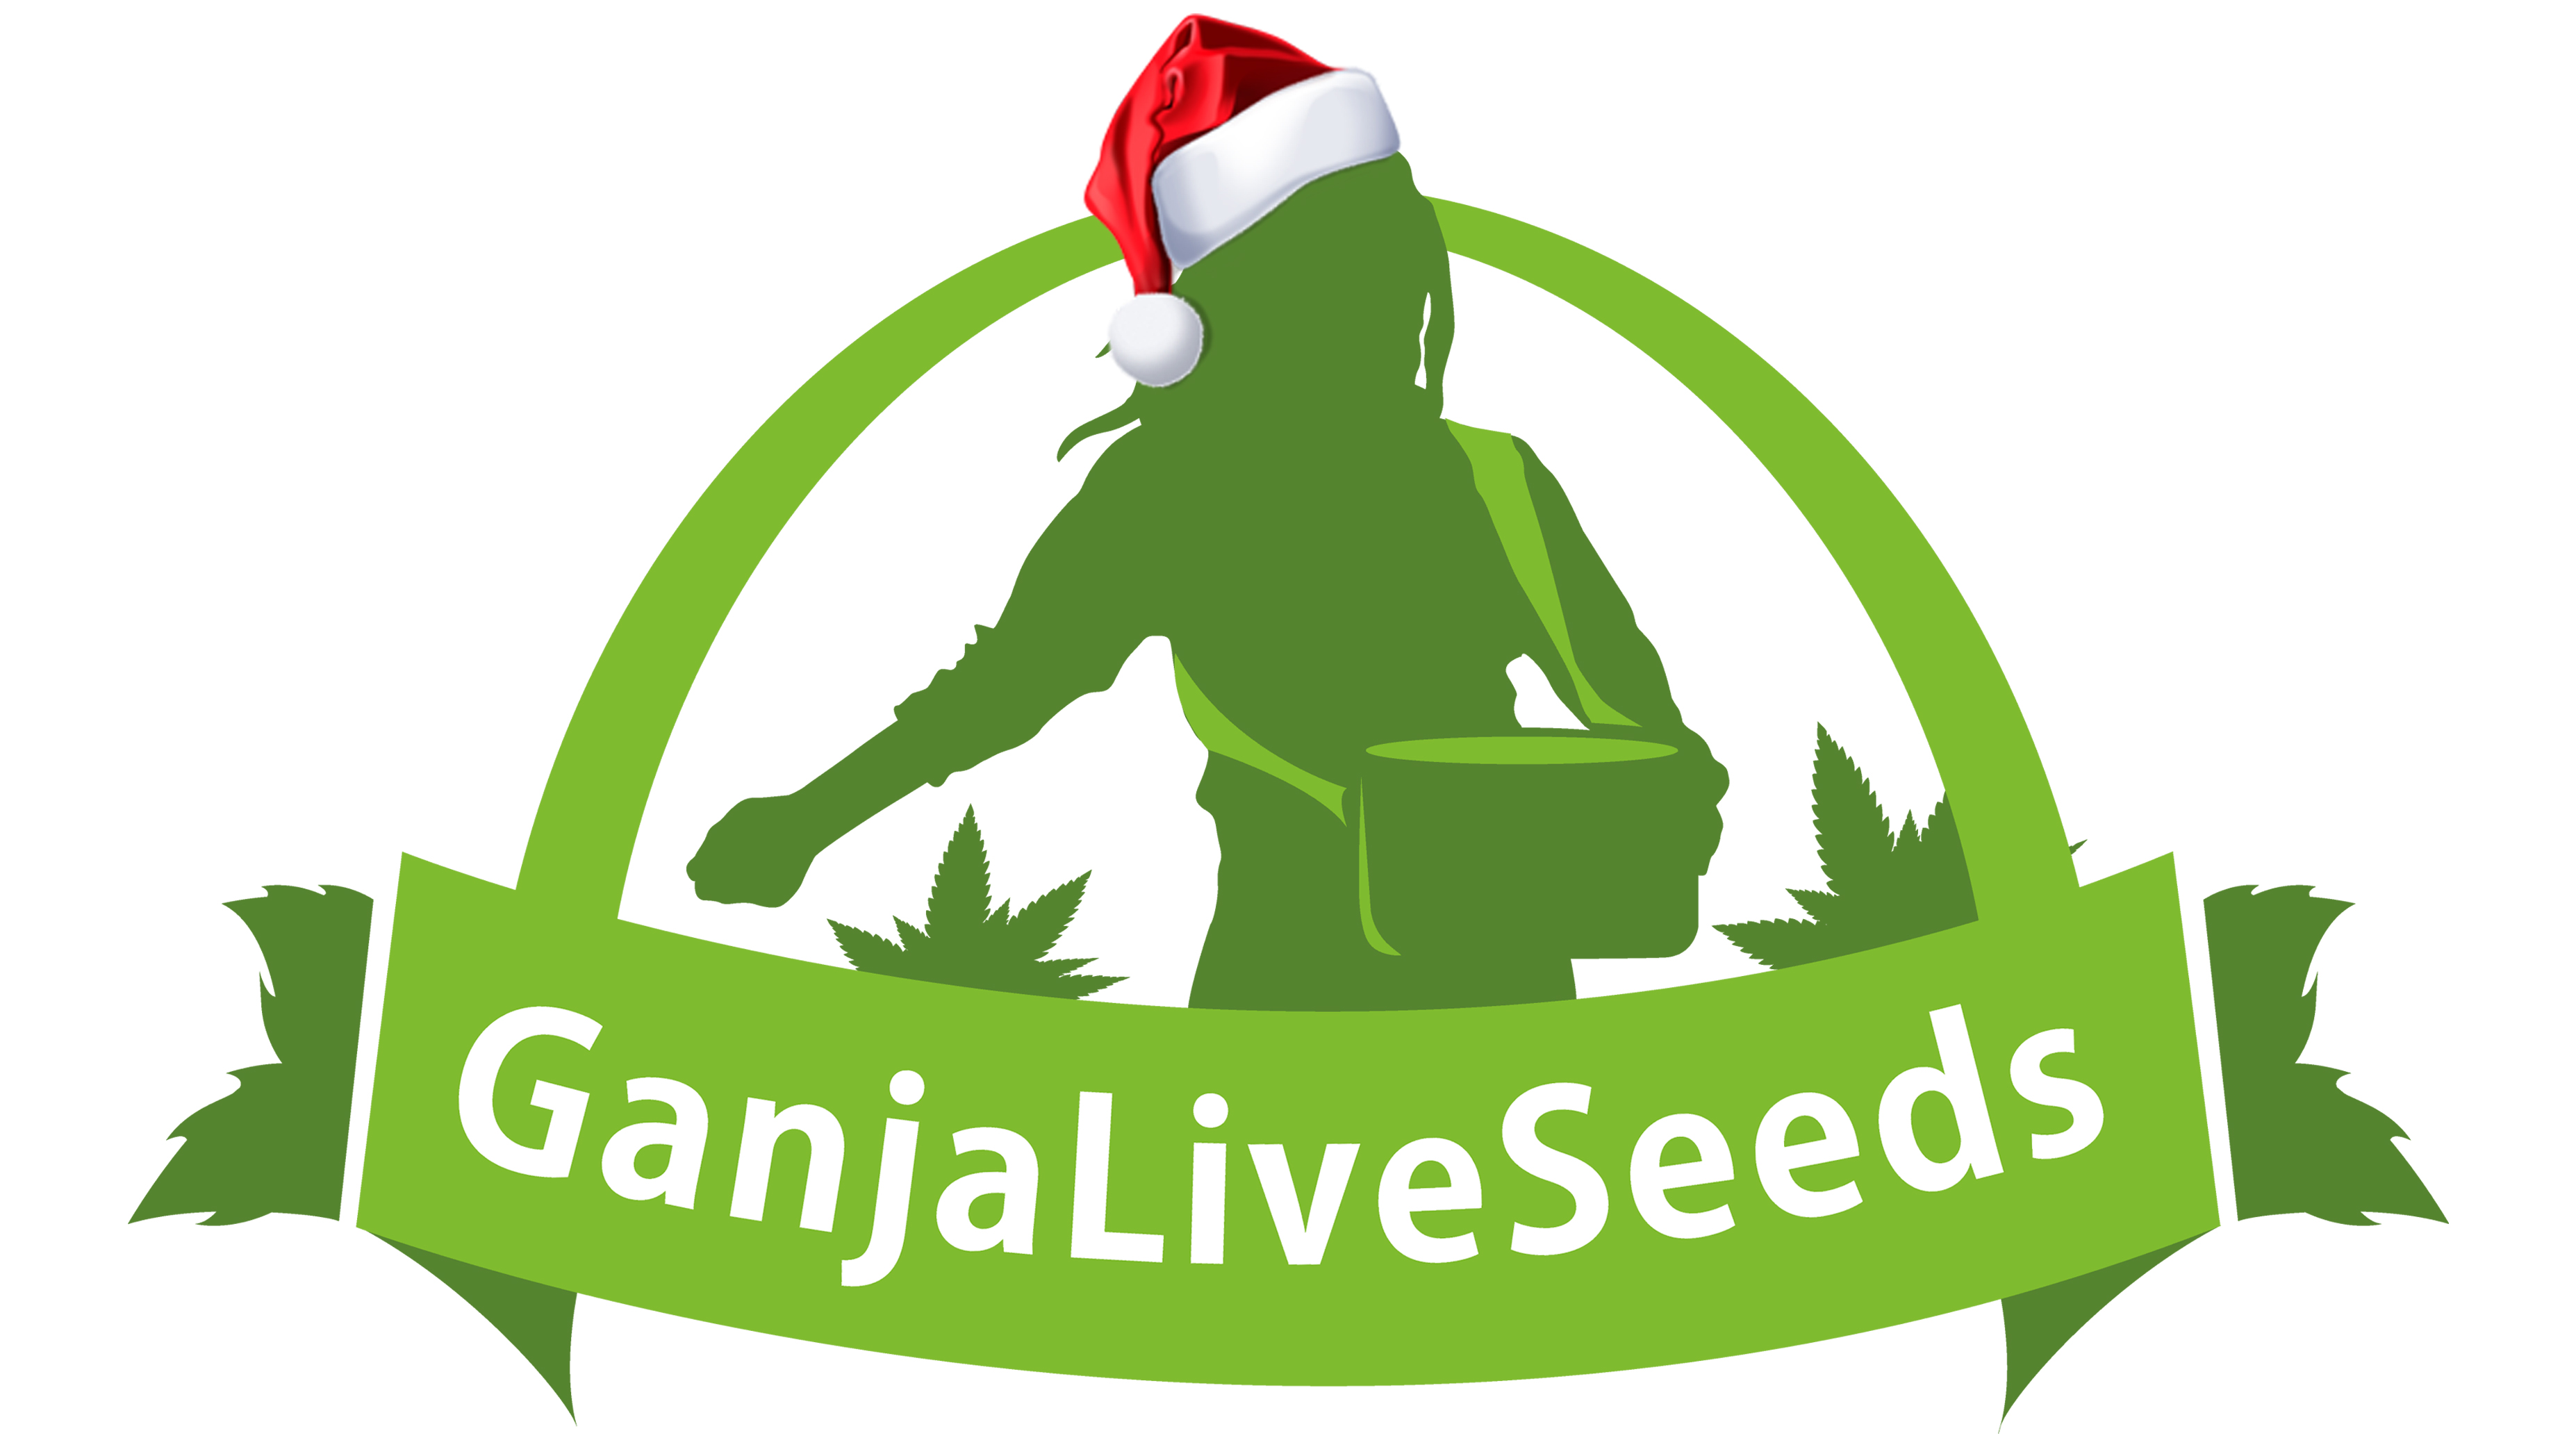 GanjaLiveSeeds